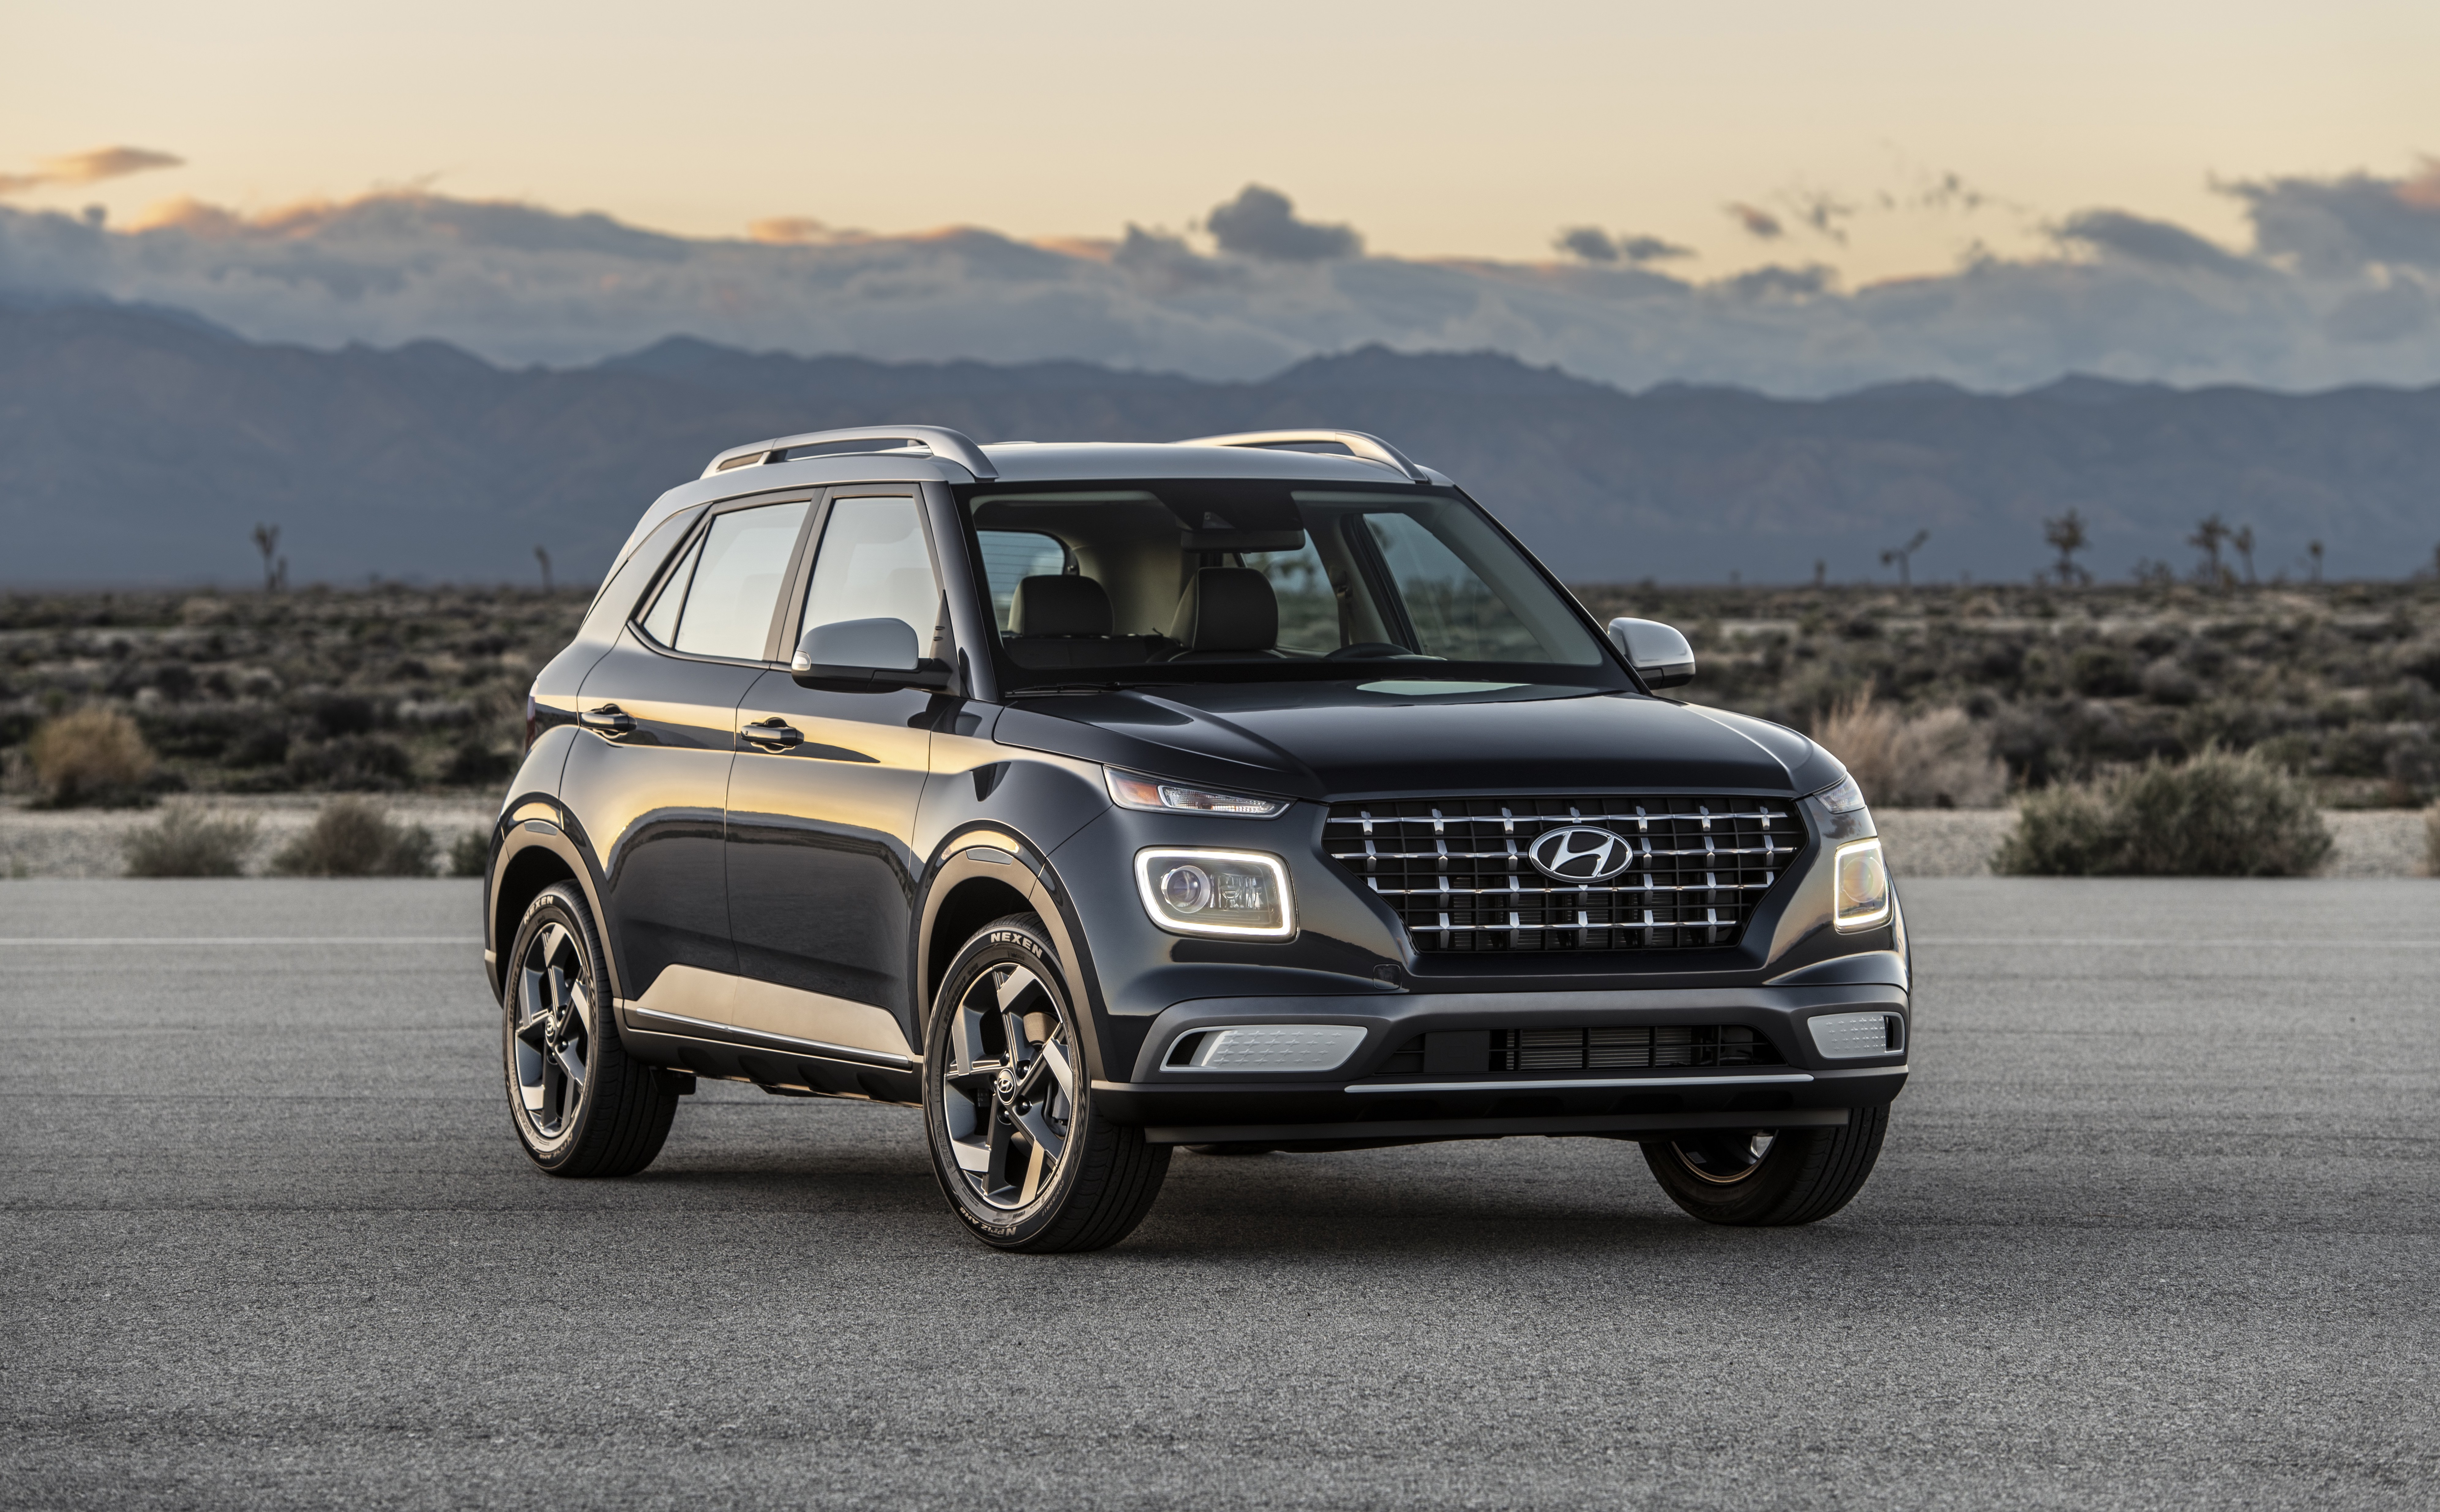 80 New Hyundai For 2020 First Drive by Hyundai For 2020